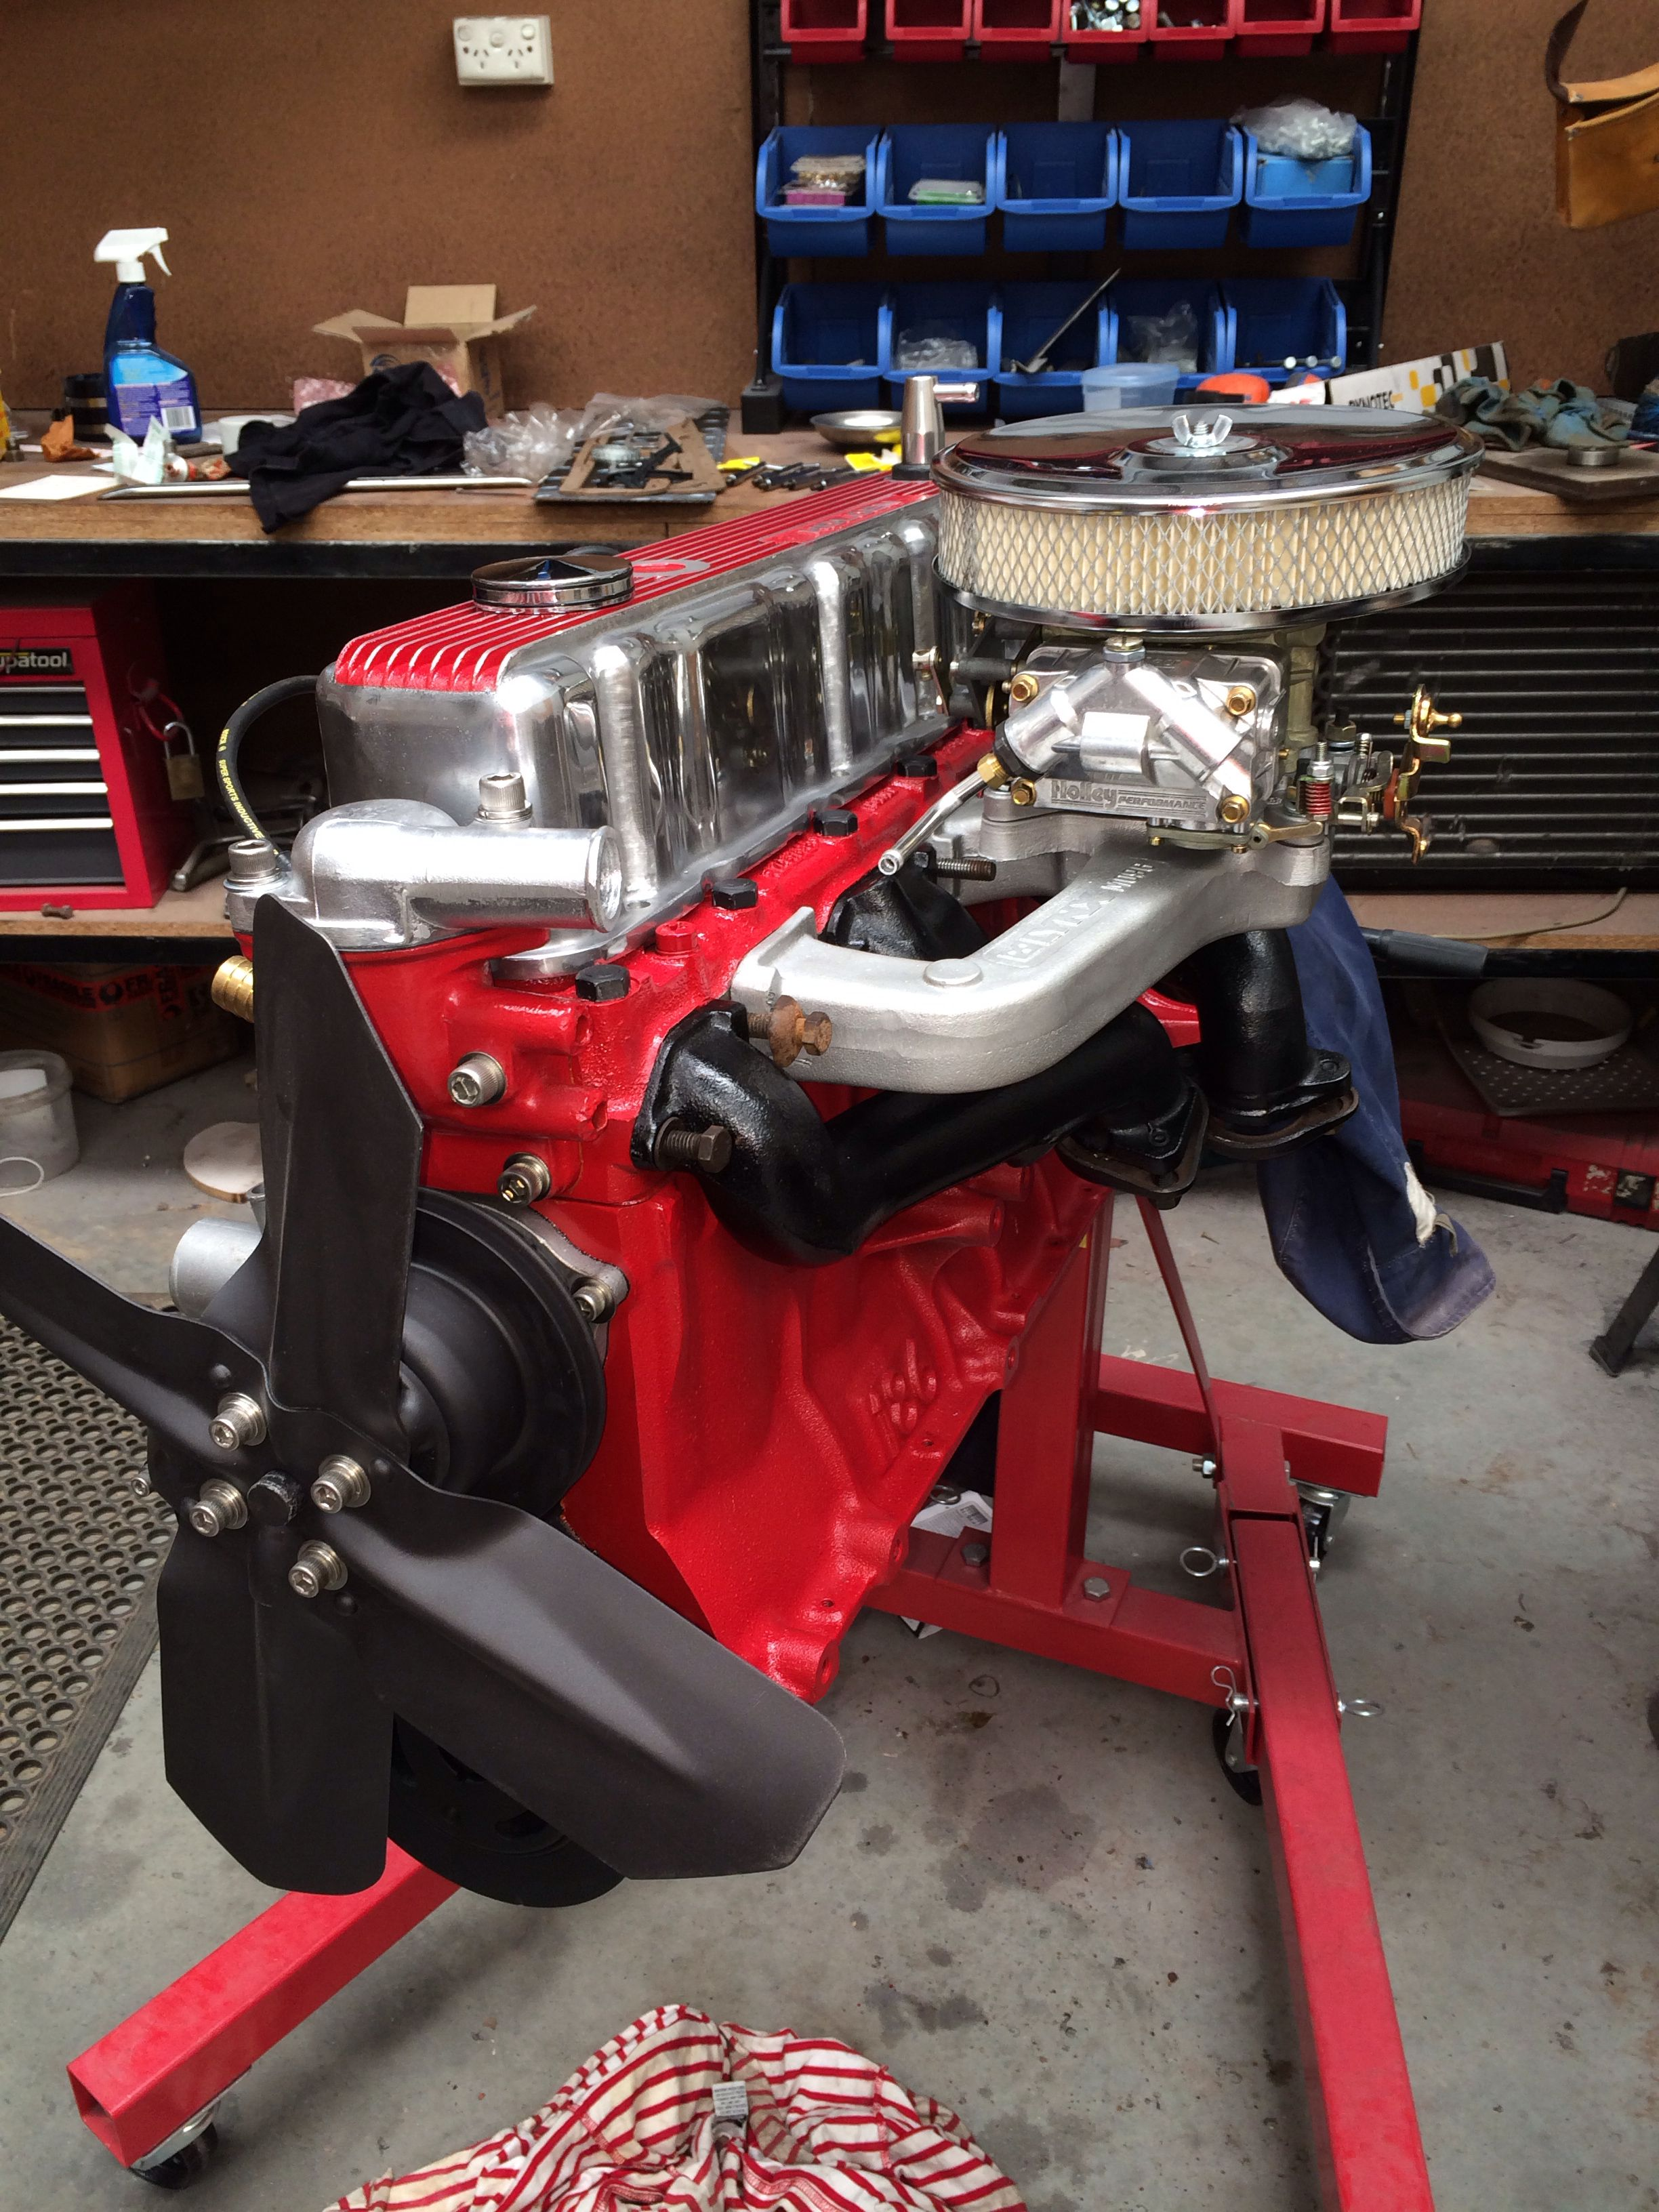 186s for 67special cool rides pinterest chevy cars and